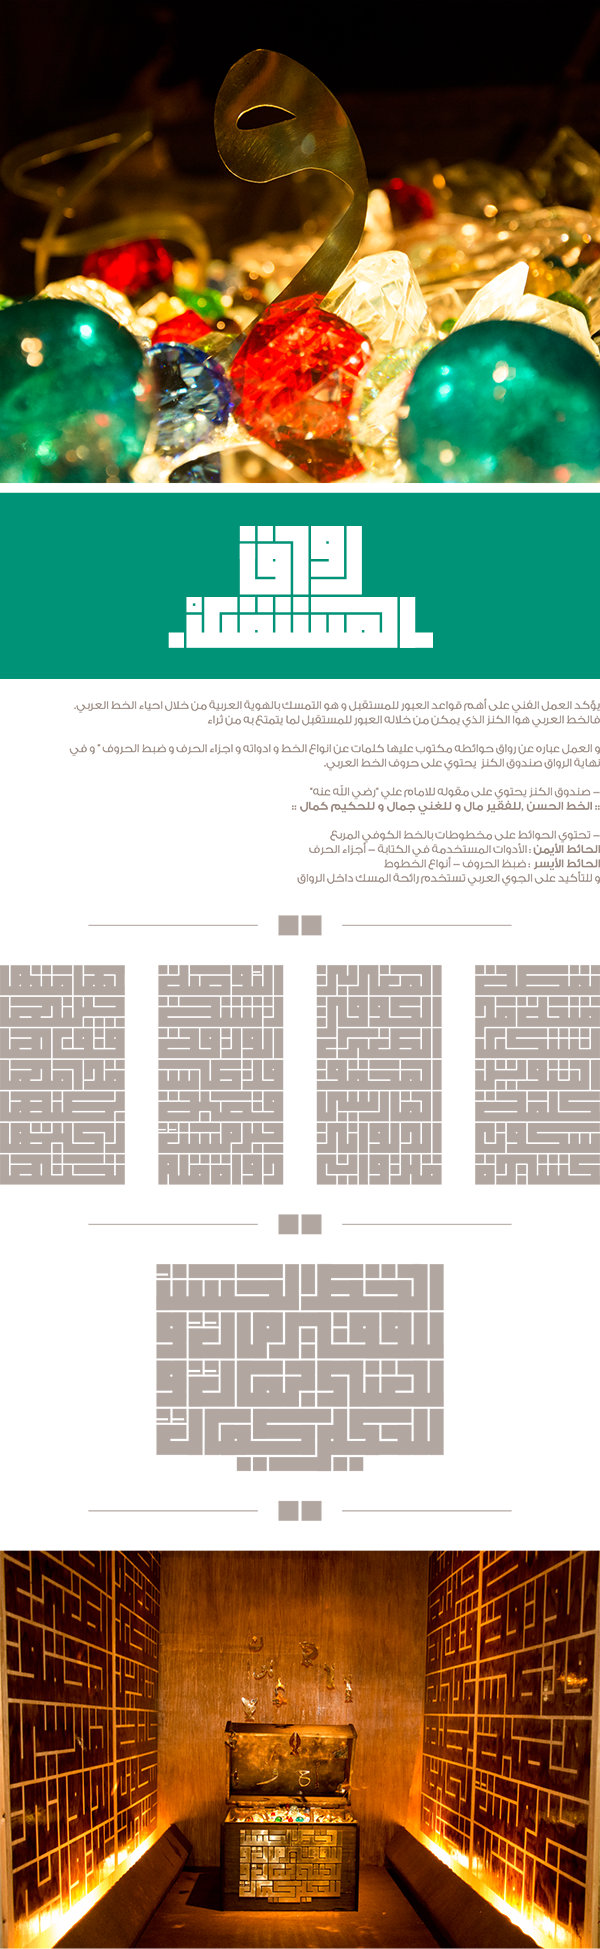 Kufi Installation Ruaq El Mostaqbal On Behance